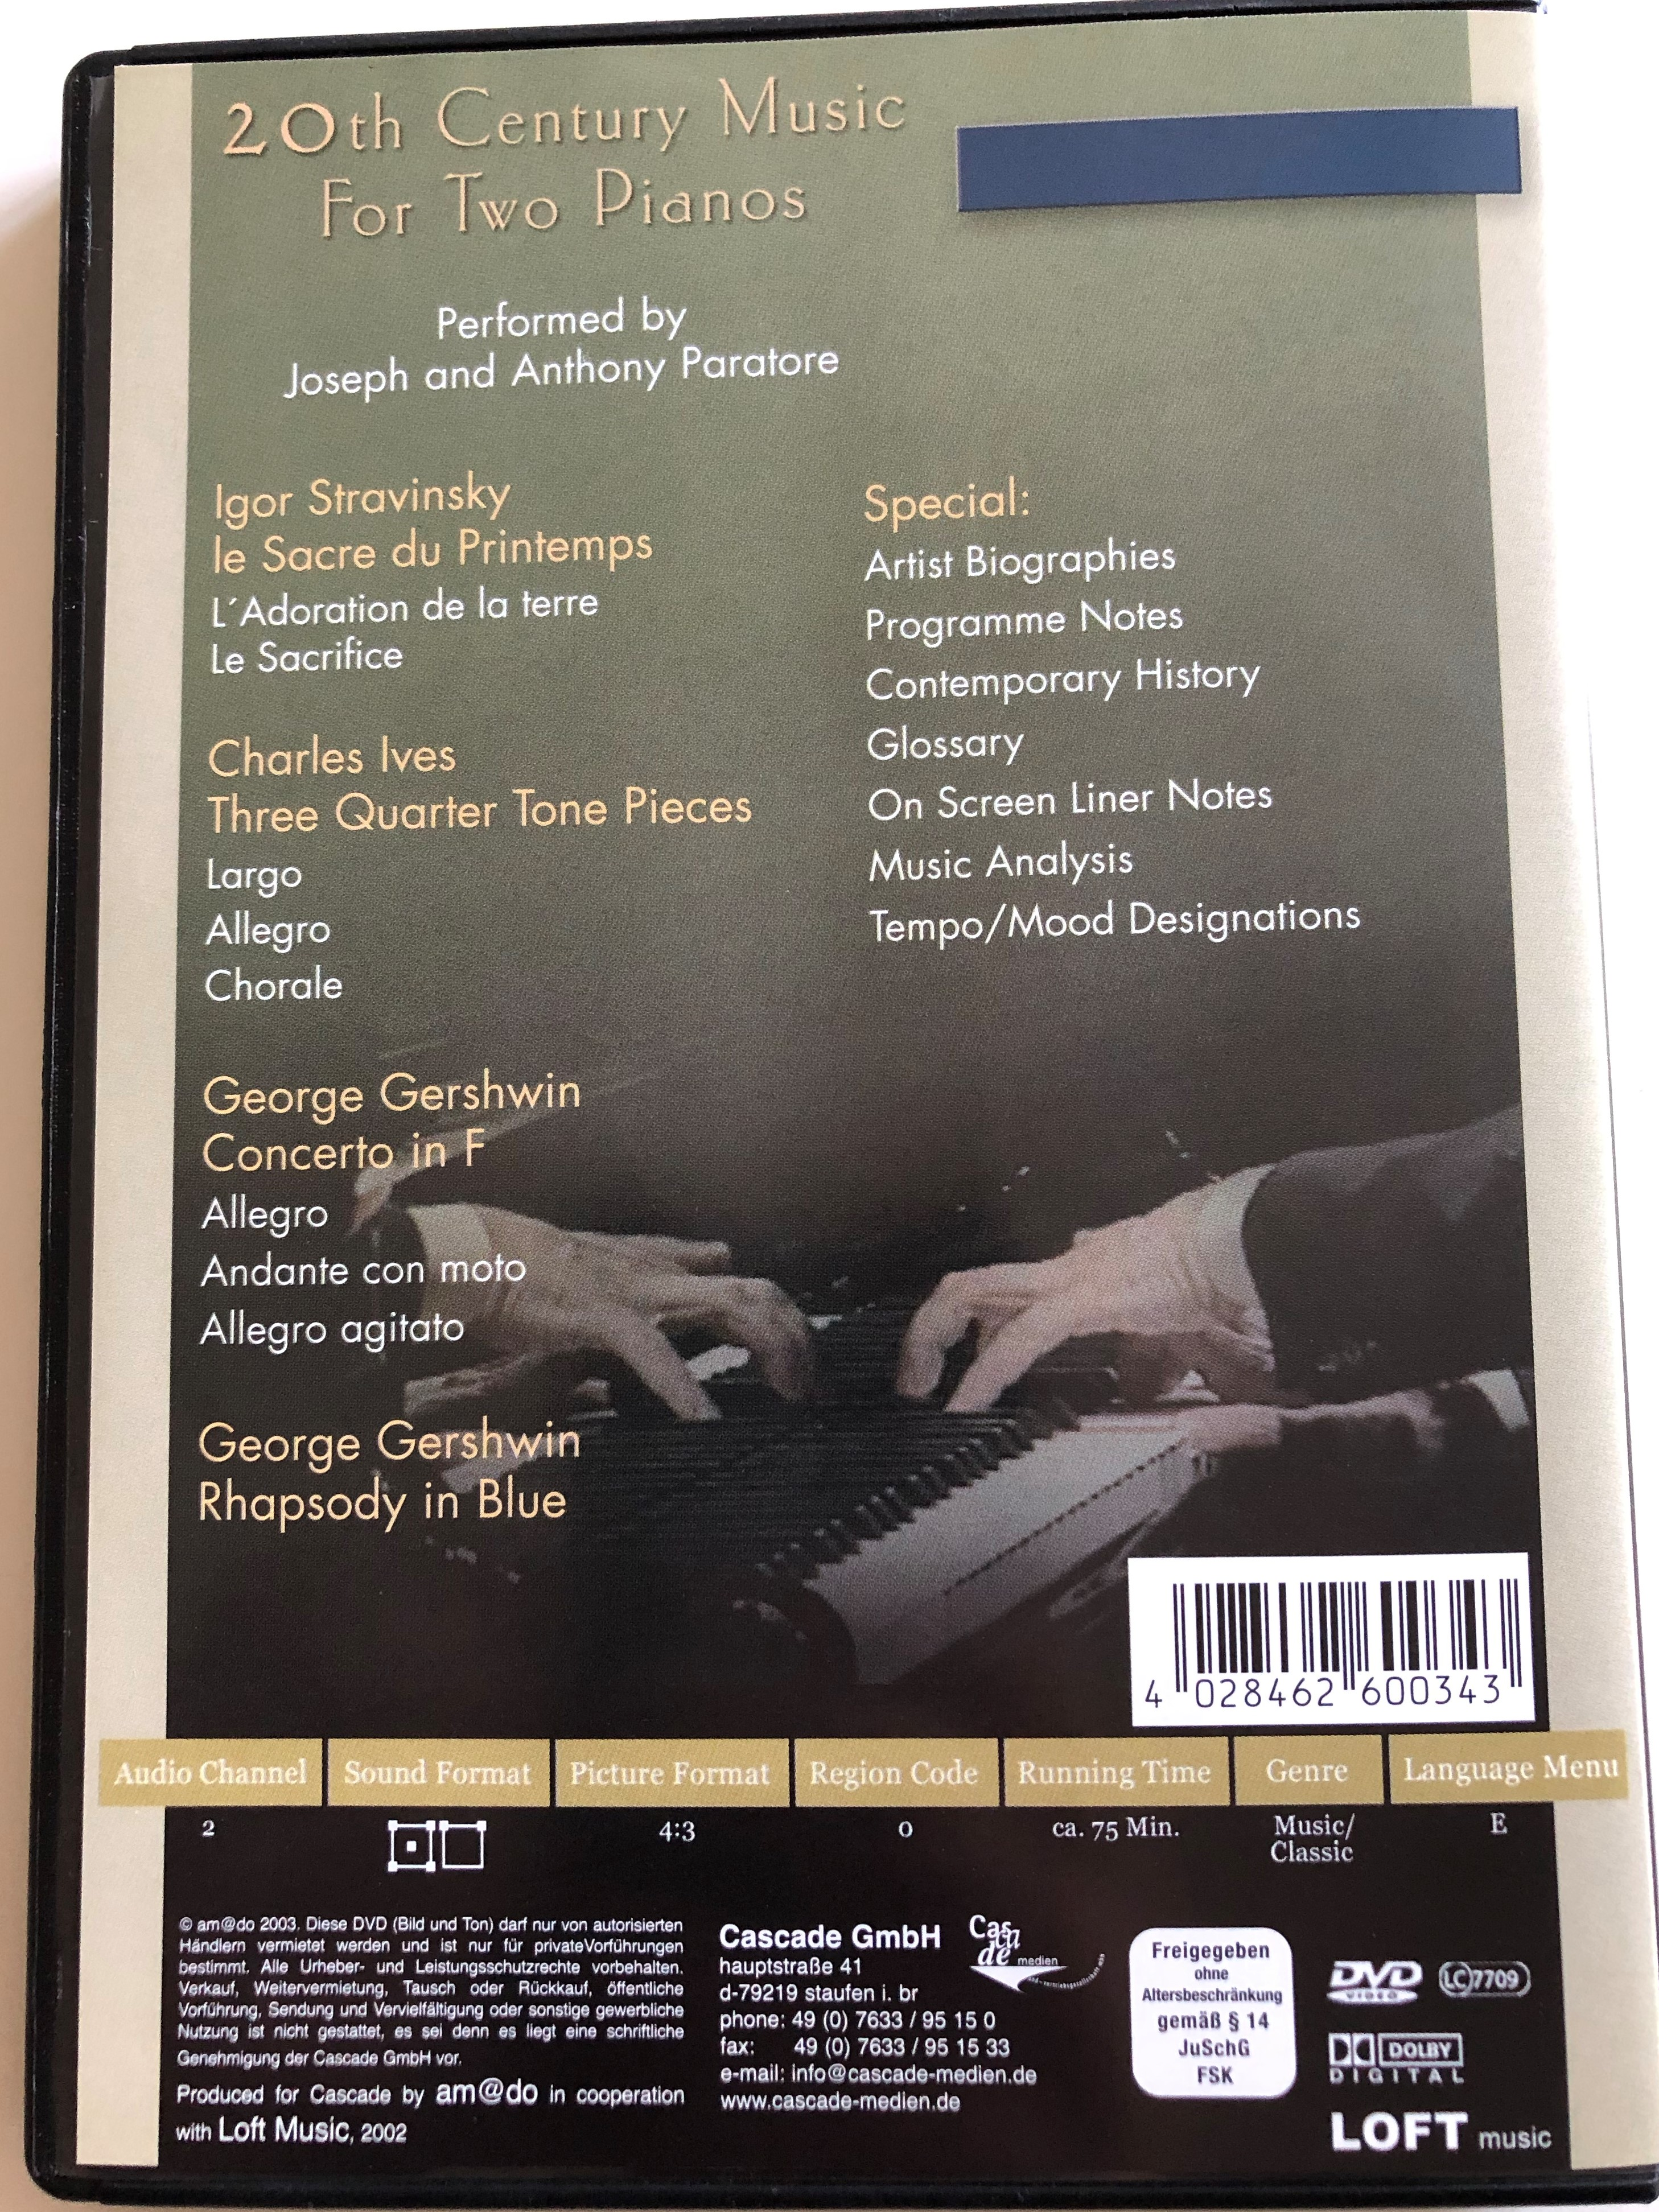 20th-century-music-for-two-pianos-dvd-2003-igor-stravinsky-charles-ives-george-gershwin-performed-by-anthony-and-joseph-paratore-amado-dvd-classics-2-.jpg